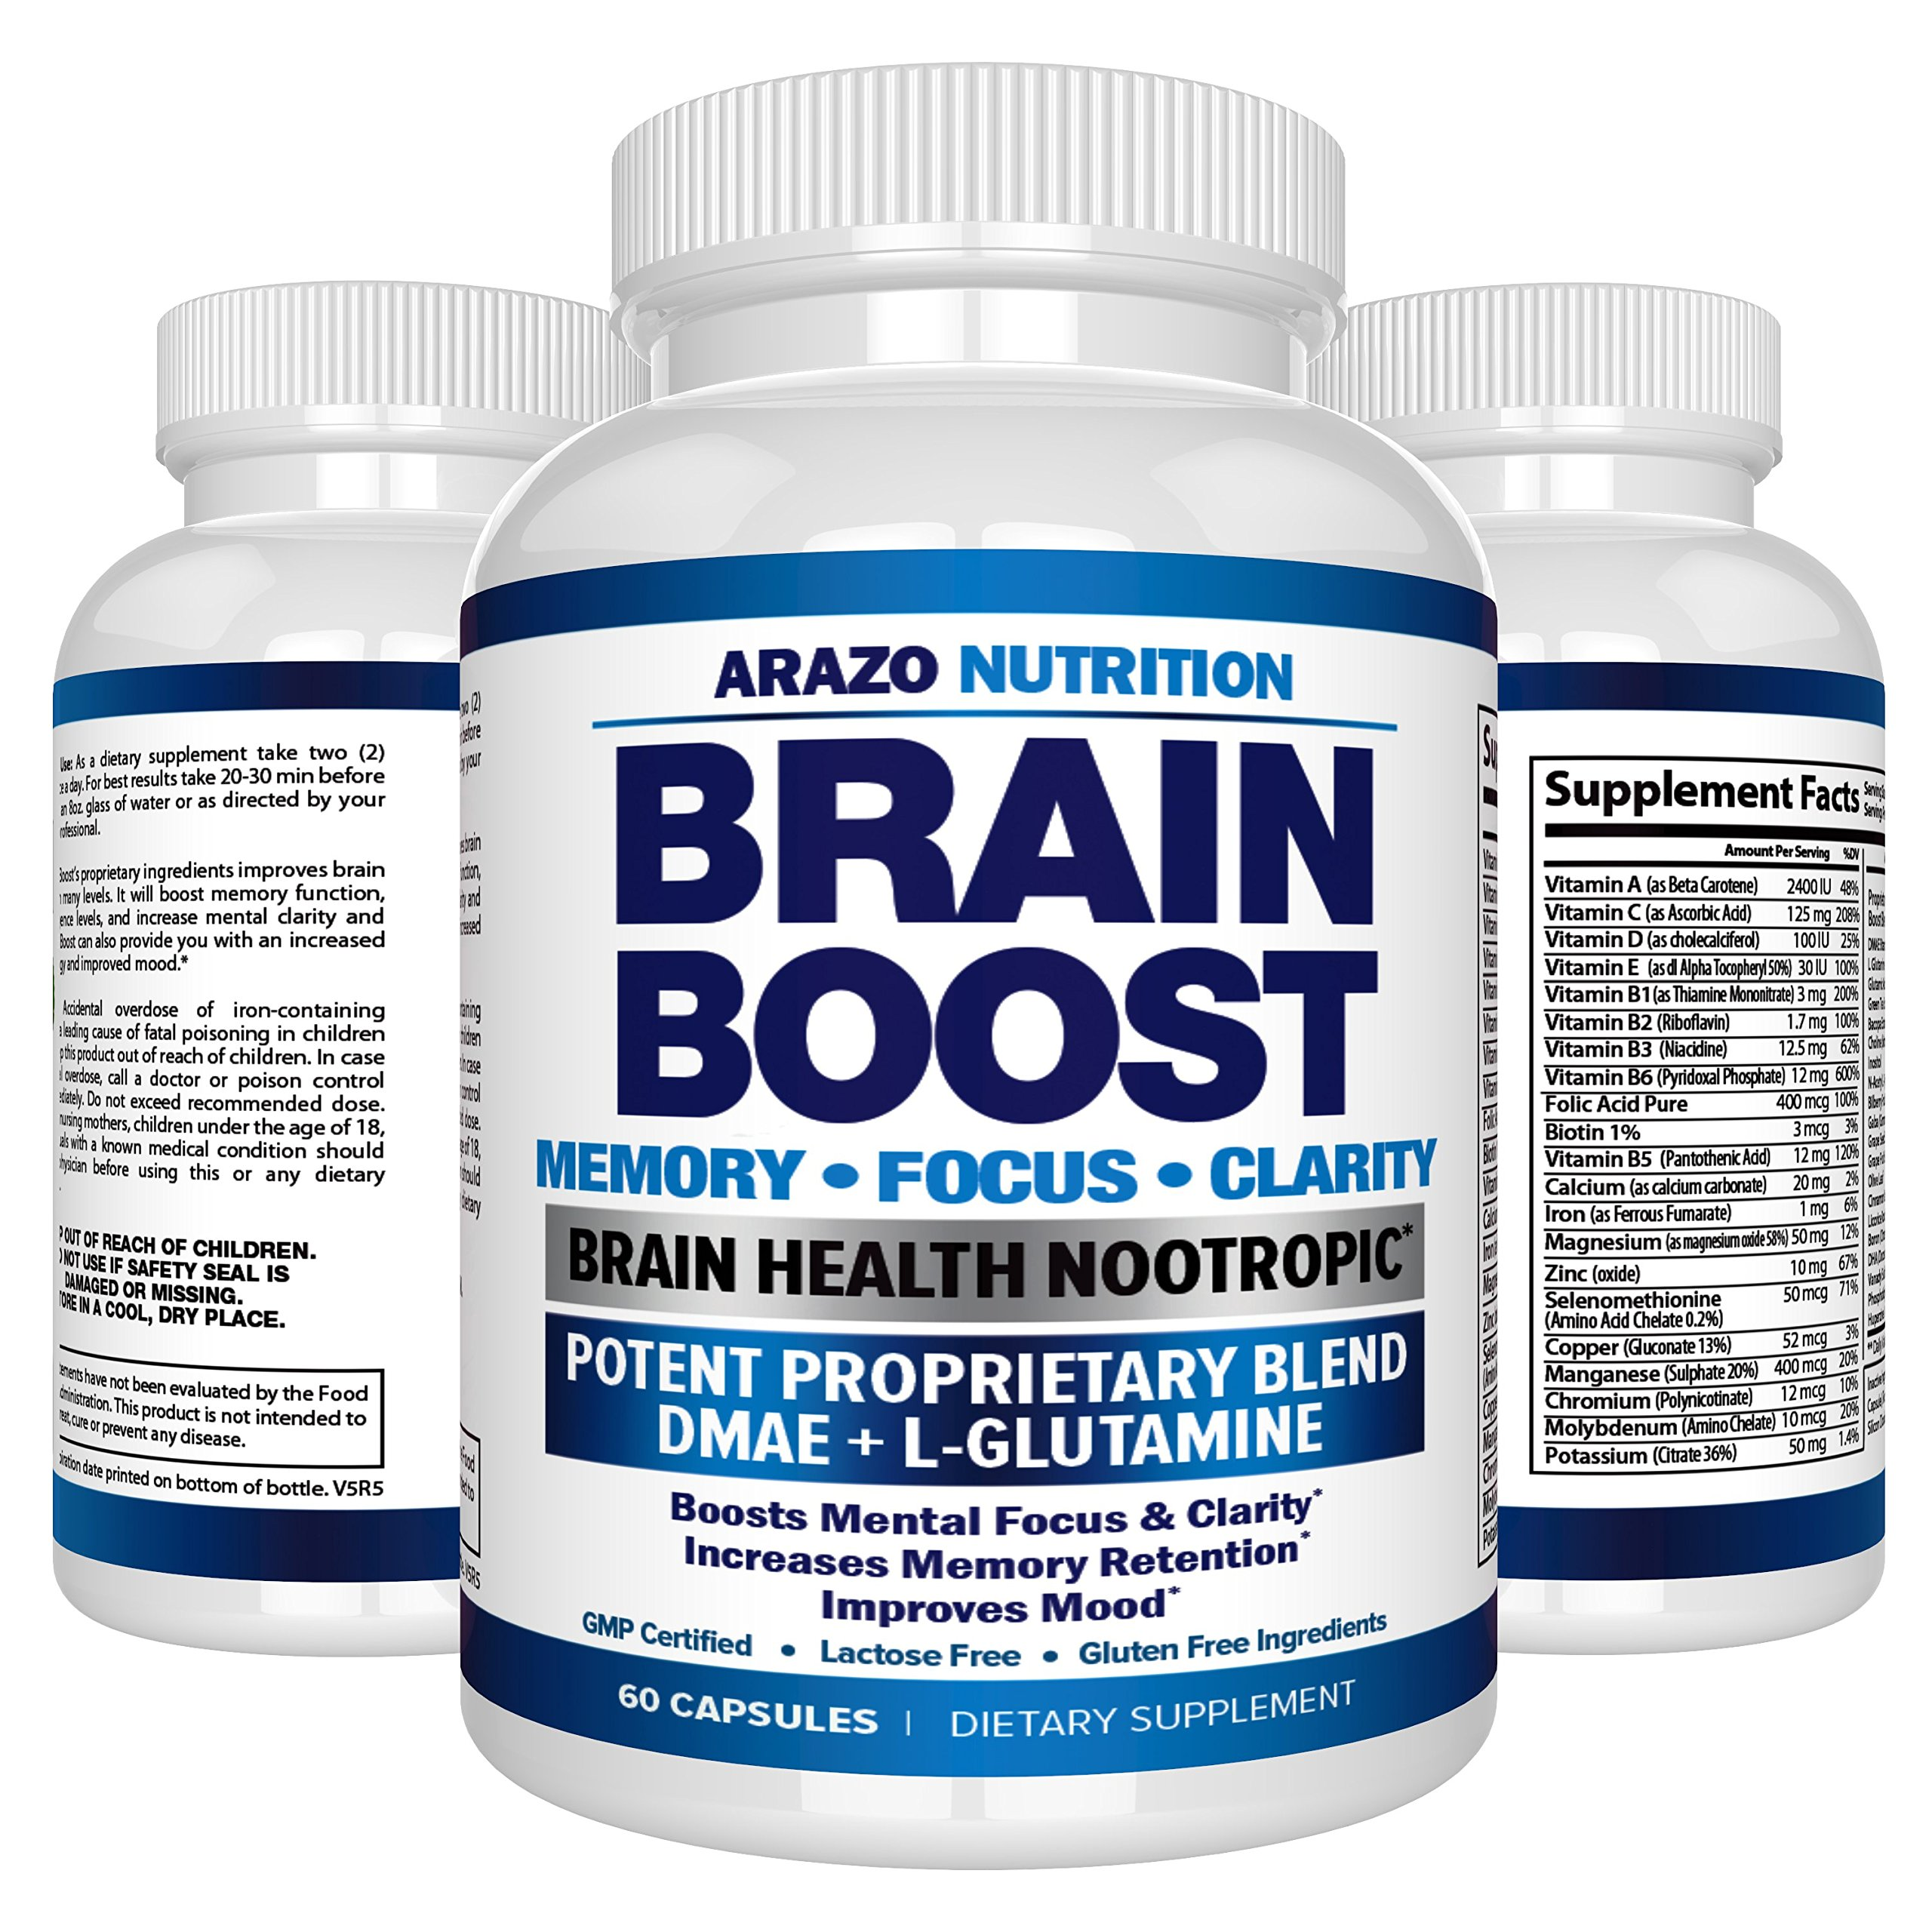 Premium Brain Function Supplement – Memory, Focus, Clarity – Nootropic Booster with DMAE, Bacopa Monnieri, L-Glutamine, Vitamins, Minerals - Arazo Nutrition